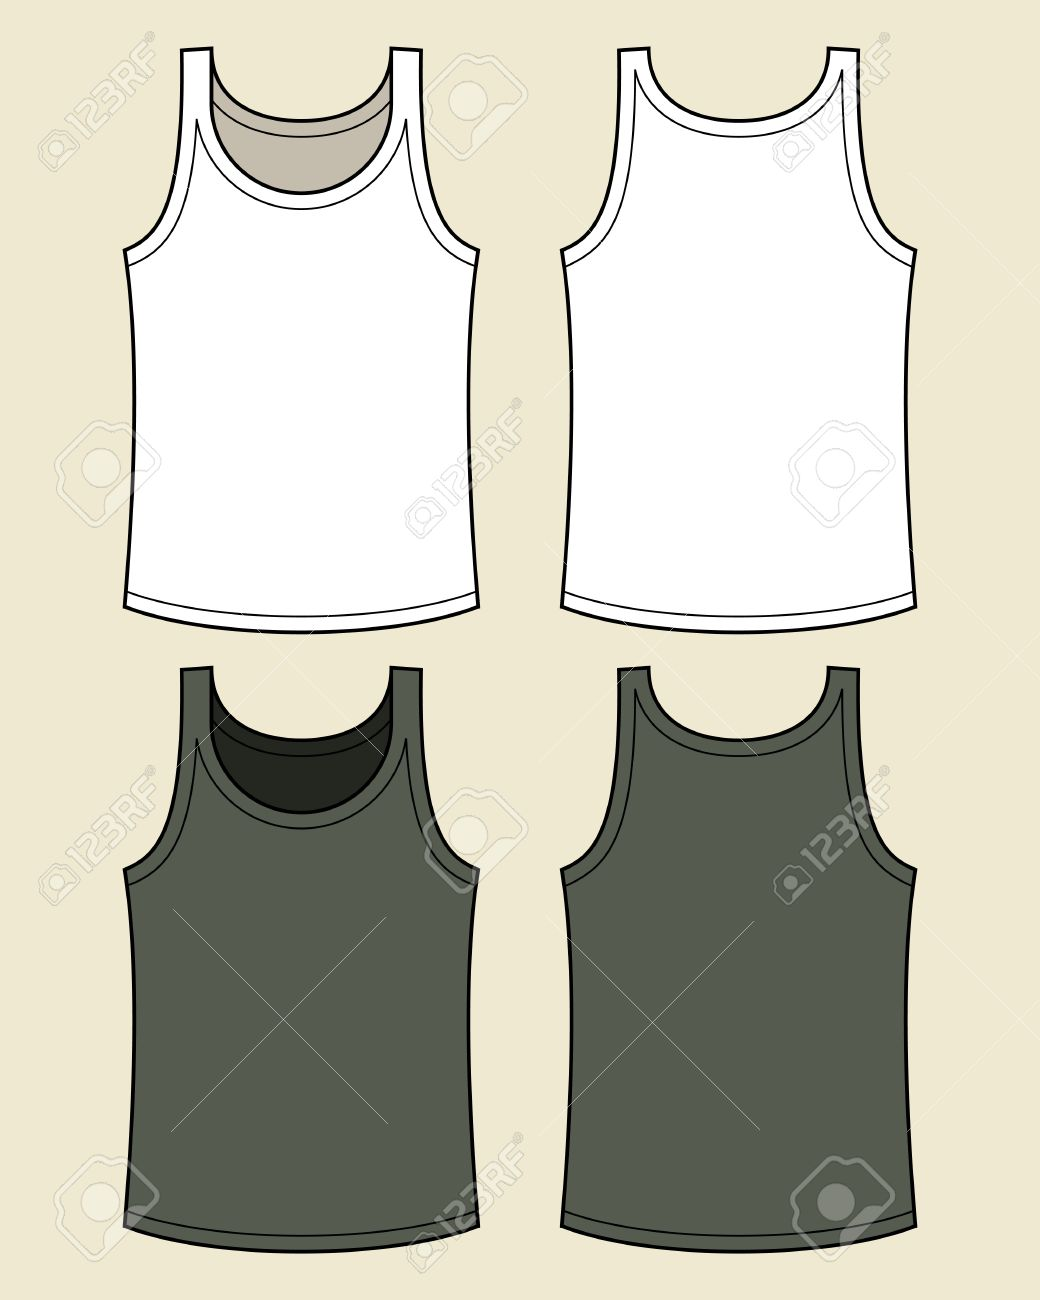 Blank singlet template royalty free cliparts vectors and stock blank singlet template stock vector 14742673 pronofoot35fo Images